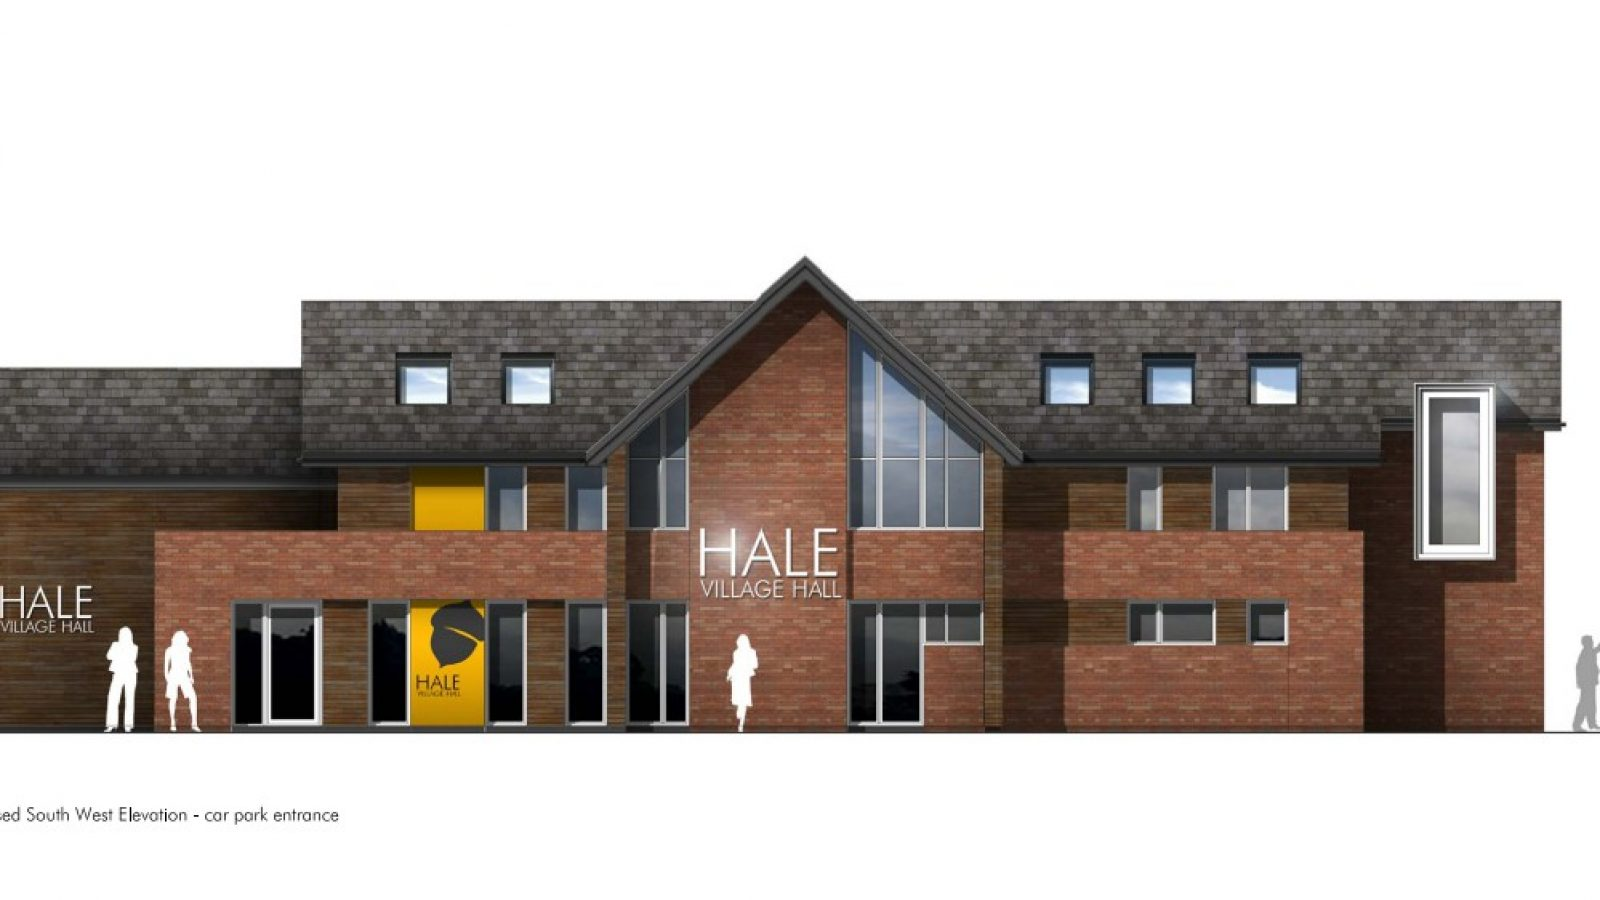 The new community centre will be built on the site of the current bowling green pavilion